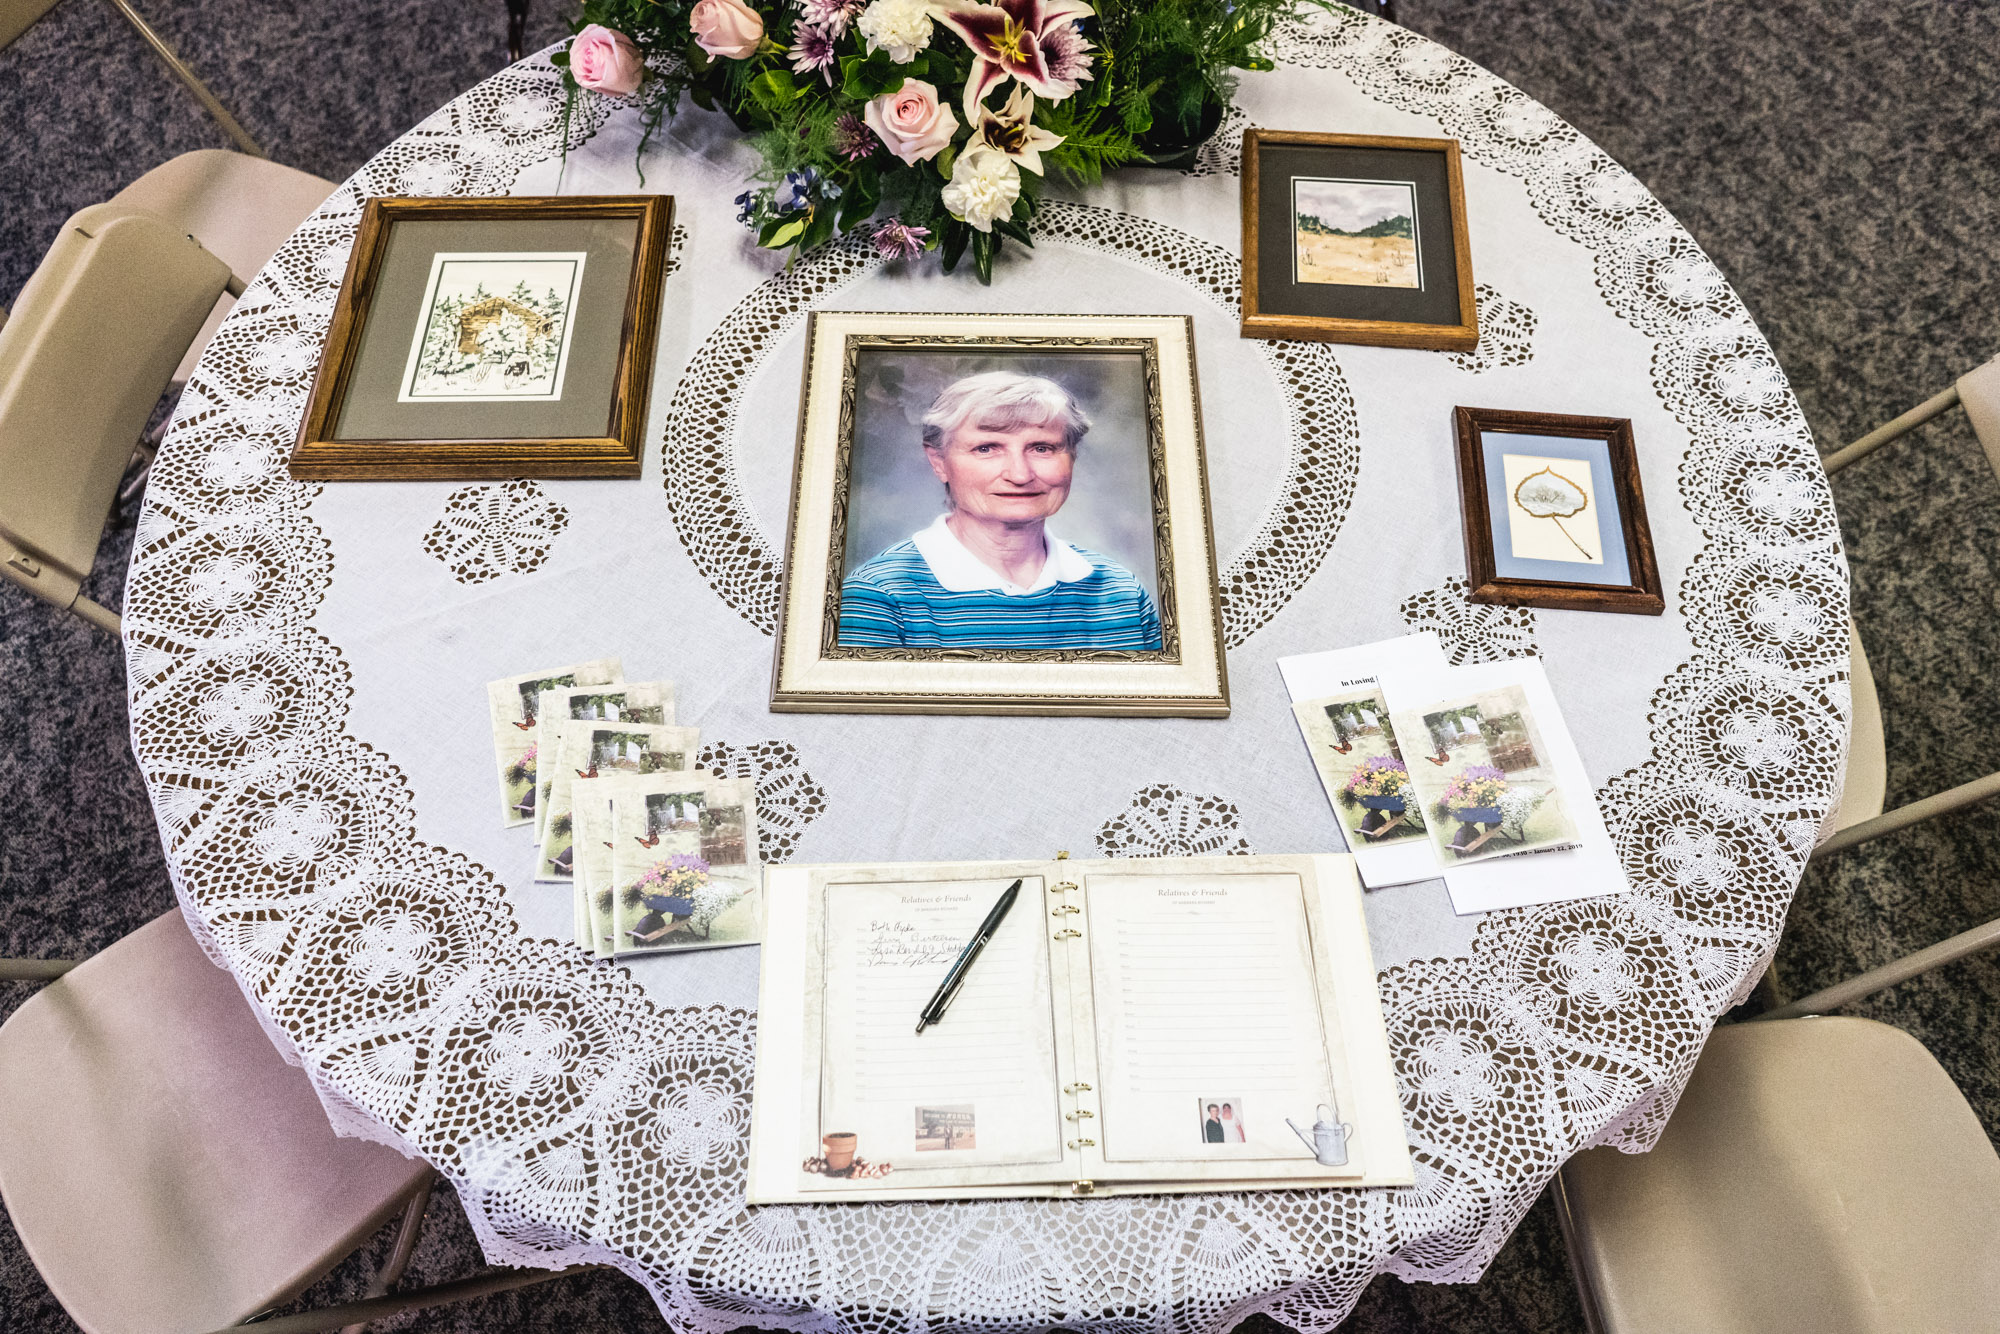 Photo of Barbara Richard on a table during her memorial service in Greeley, Colorado